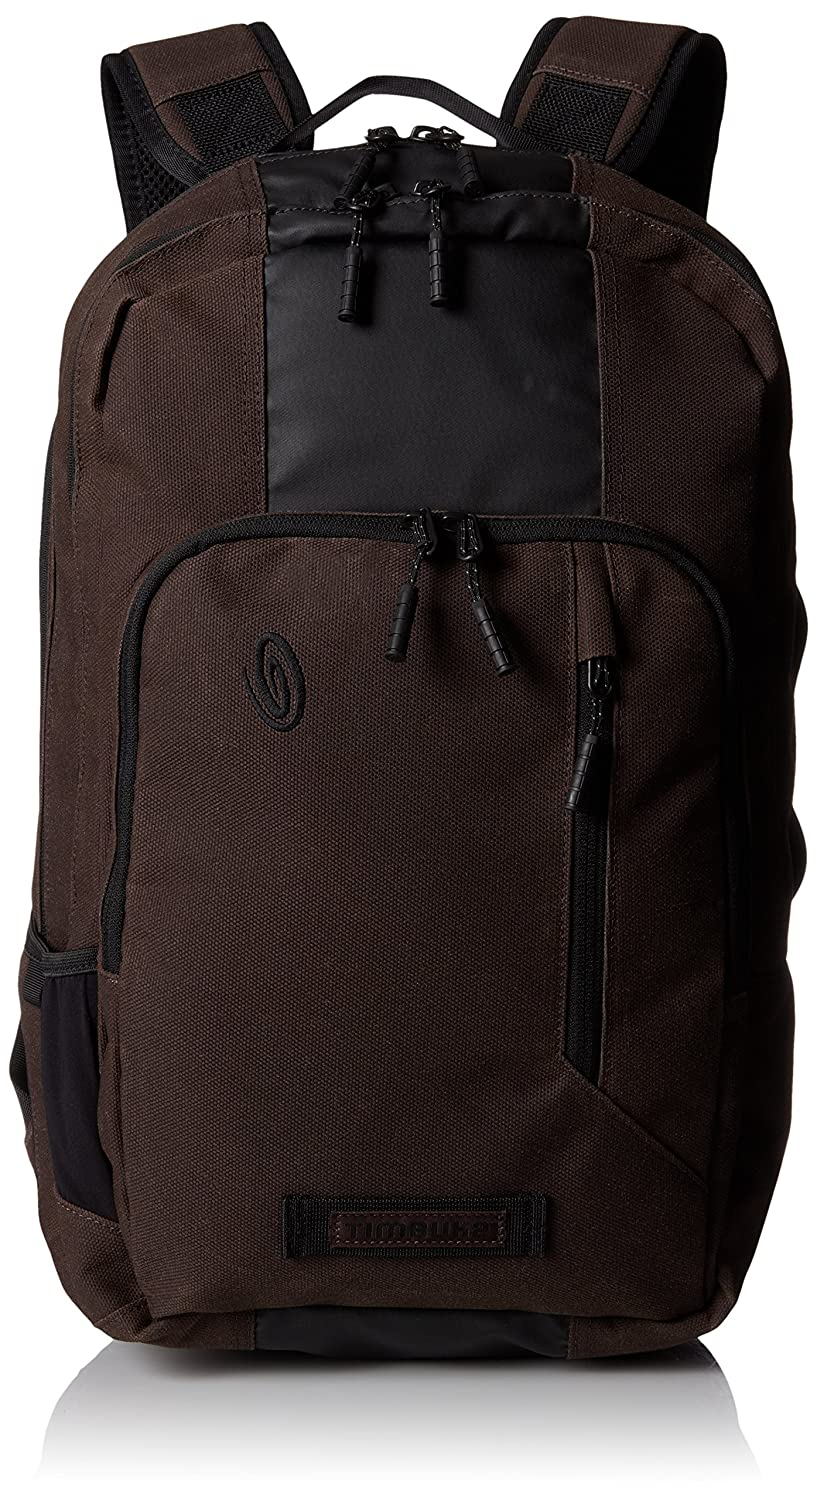 Timbuk2 Uptown 17 Inch Laptop Backpack